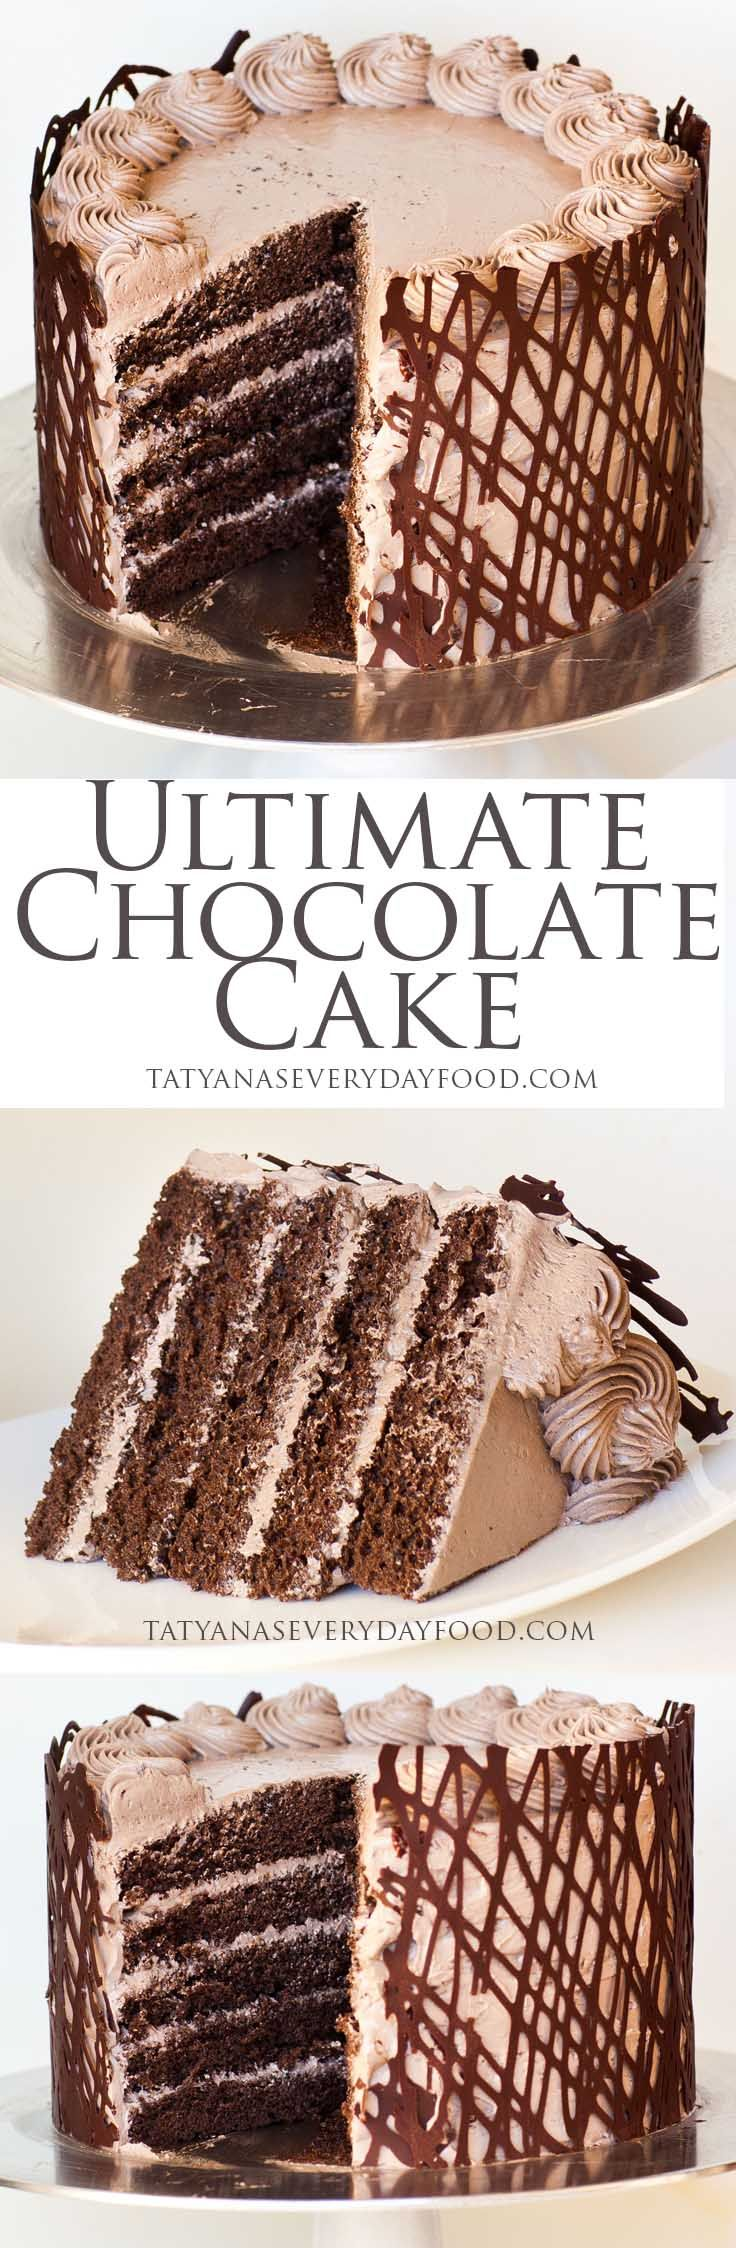 Ultimate Chocolate Cake Recipe, rich cake, light frosting, You will fall head over heels for this restaurant recipe cake. Enjoy RUSHWORLD boards, FANCY DESSERT RECIPES, WEDDING CAKES WE DO and UNPREDICTABLE WOMEN HAUTE COUTURE. Follow RUSHWORLD on Pinterest! New content daily, always something you'll love!